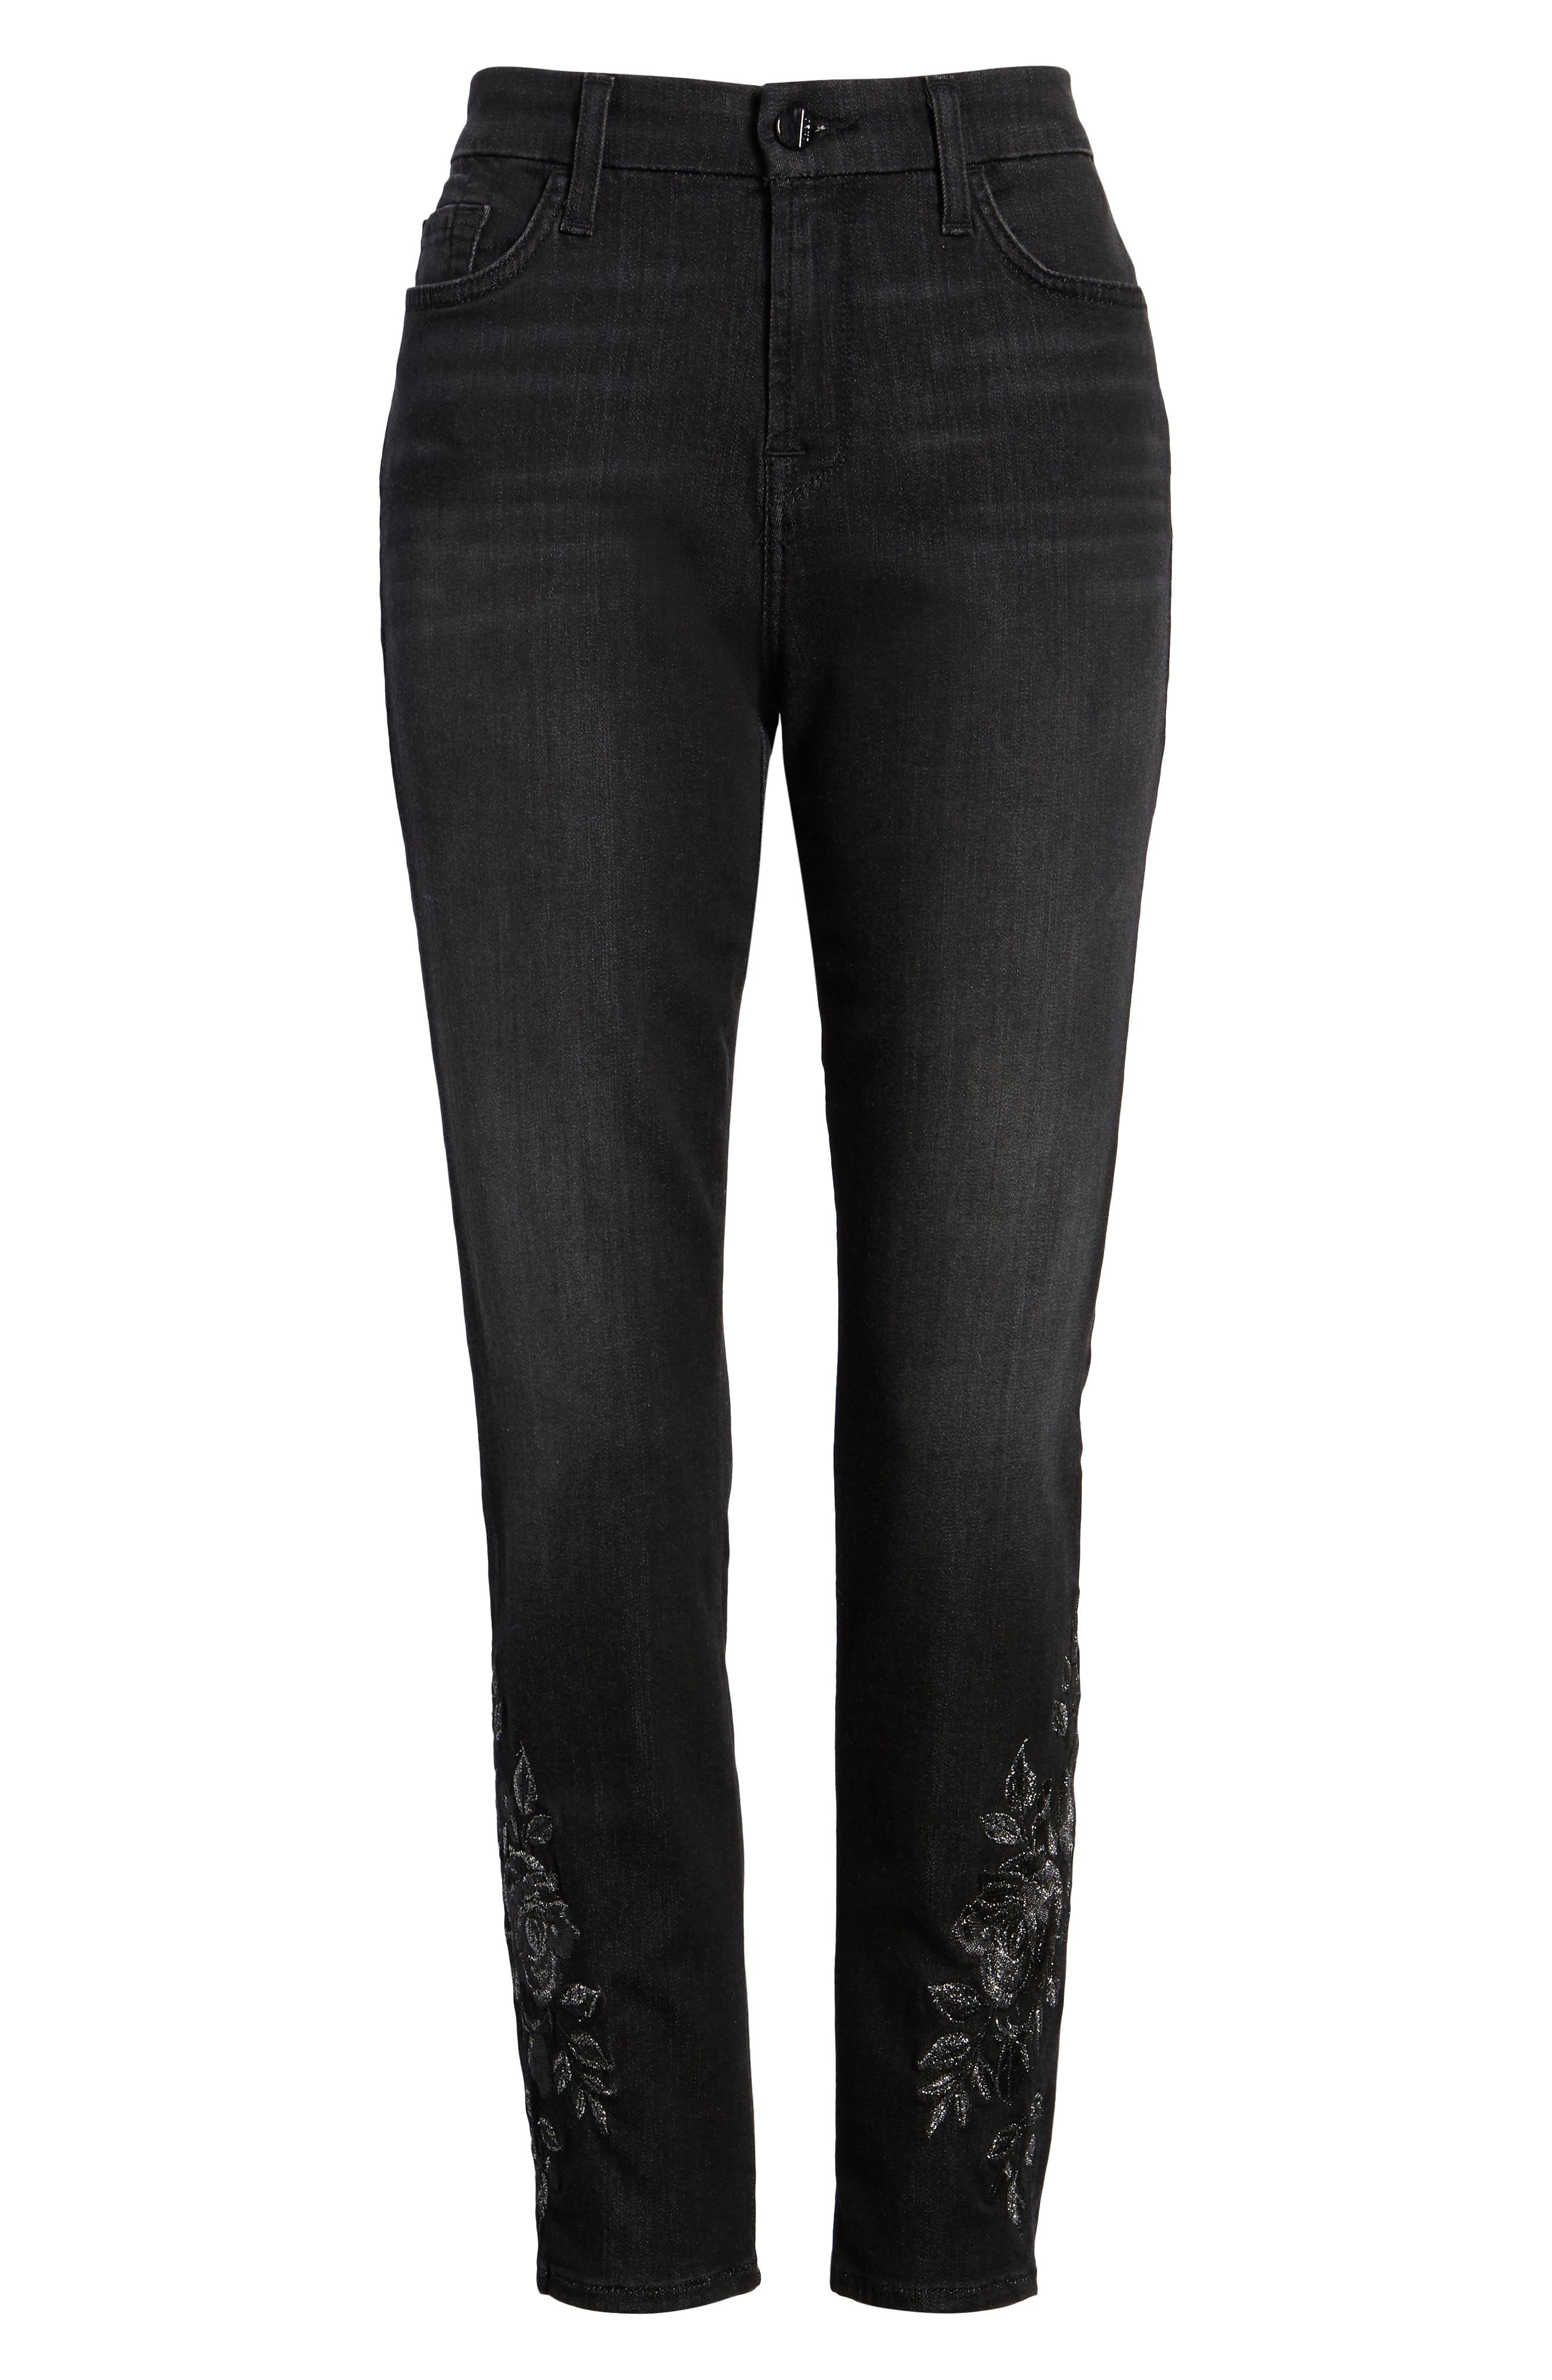 JEN7 BY 7 FOR ALL MANKIND, Embroidered Ankle Skinny Jeans, Alternate thumbnail 7, color, RICHE TOUCH AGED BLACK